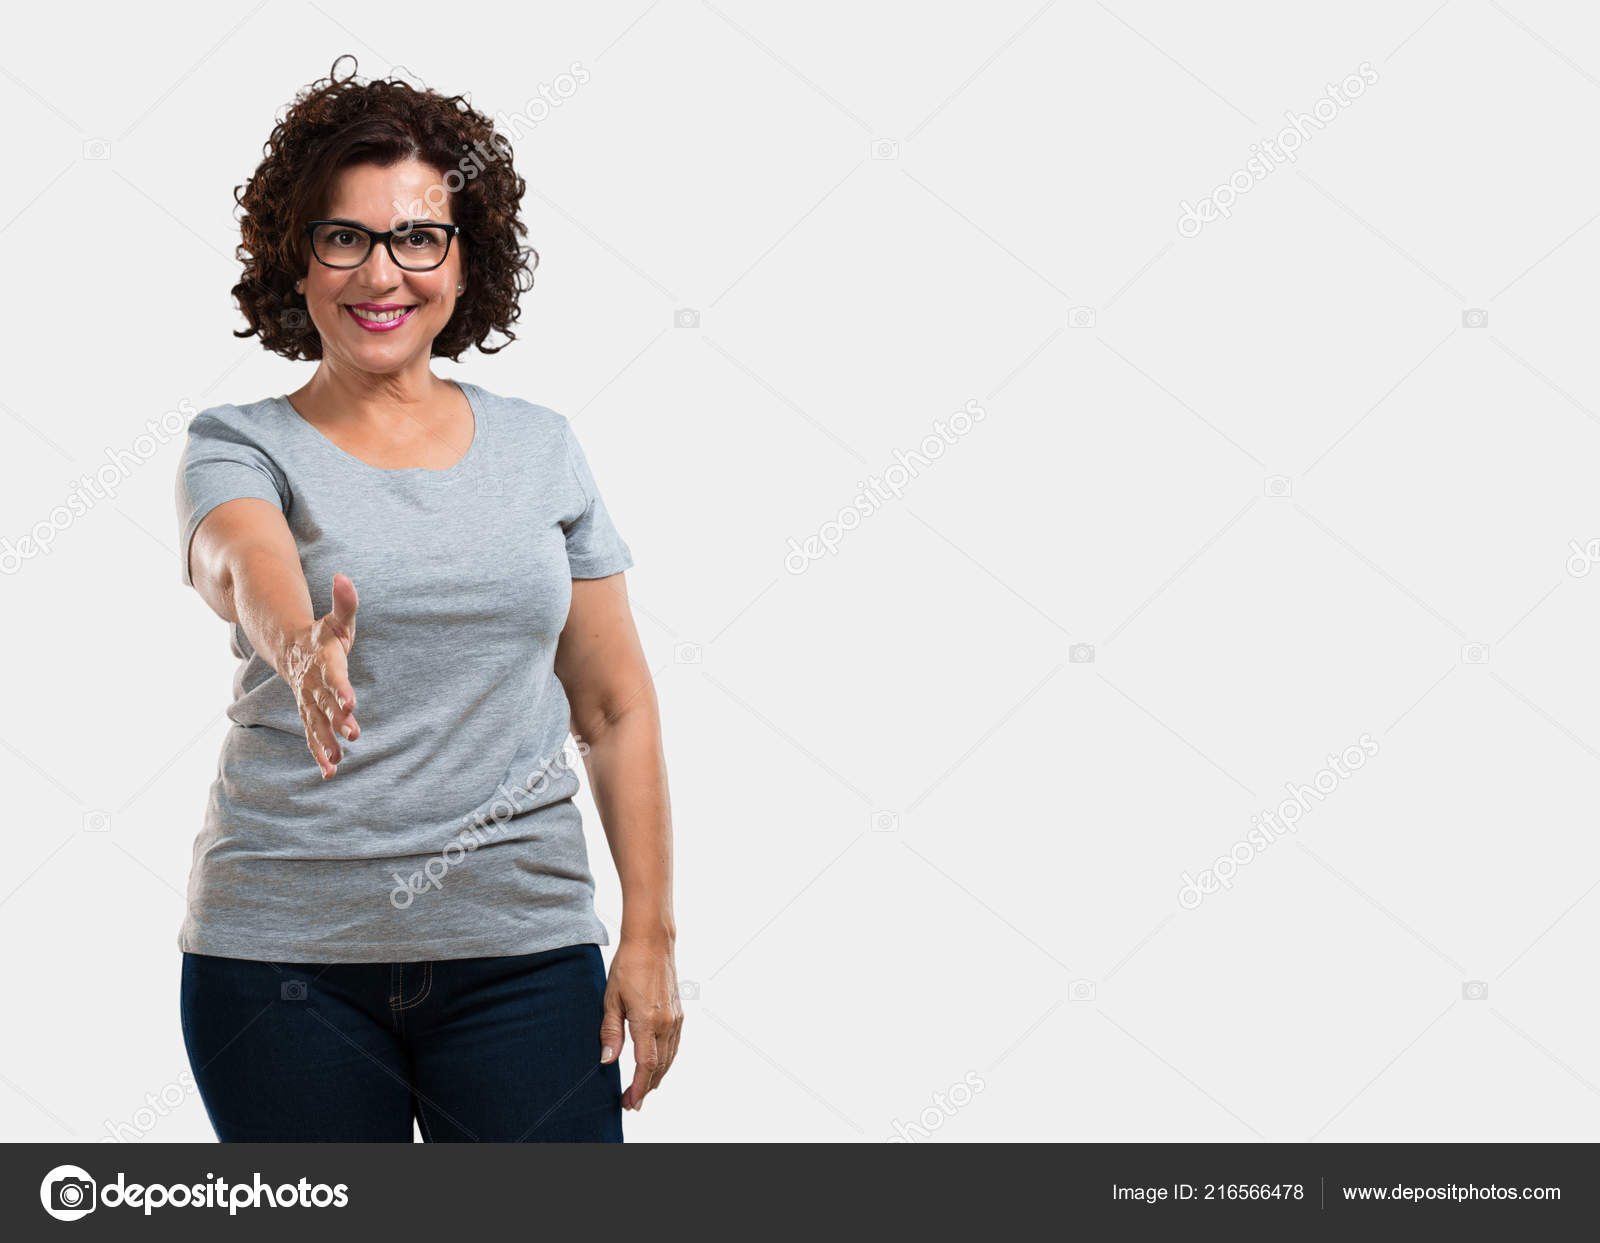 Middle Aged Woman Reaching Out Greet Someone Gesturing Help Happy